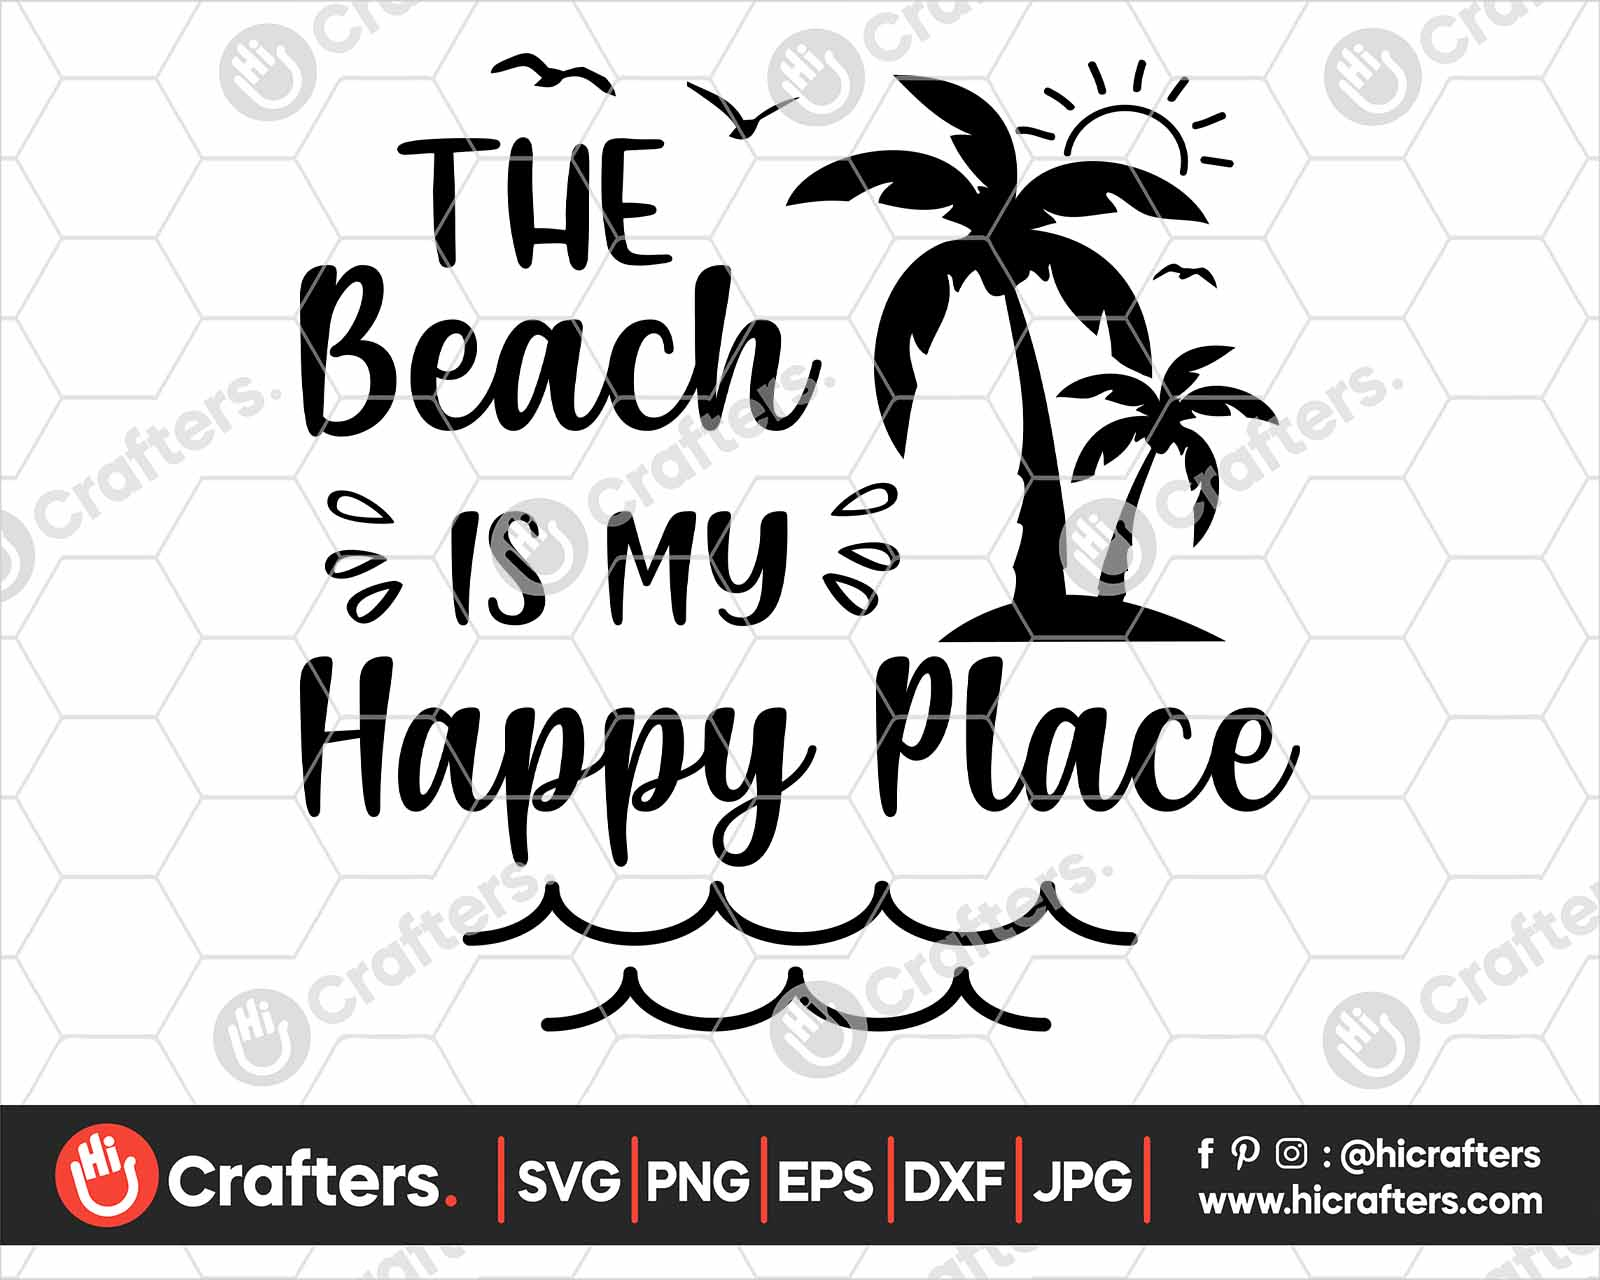 The Beach Is My Happy Place Svg Png For Cricut Hi Crafters